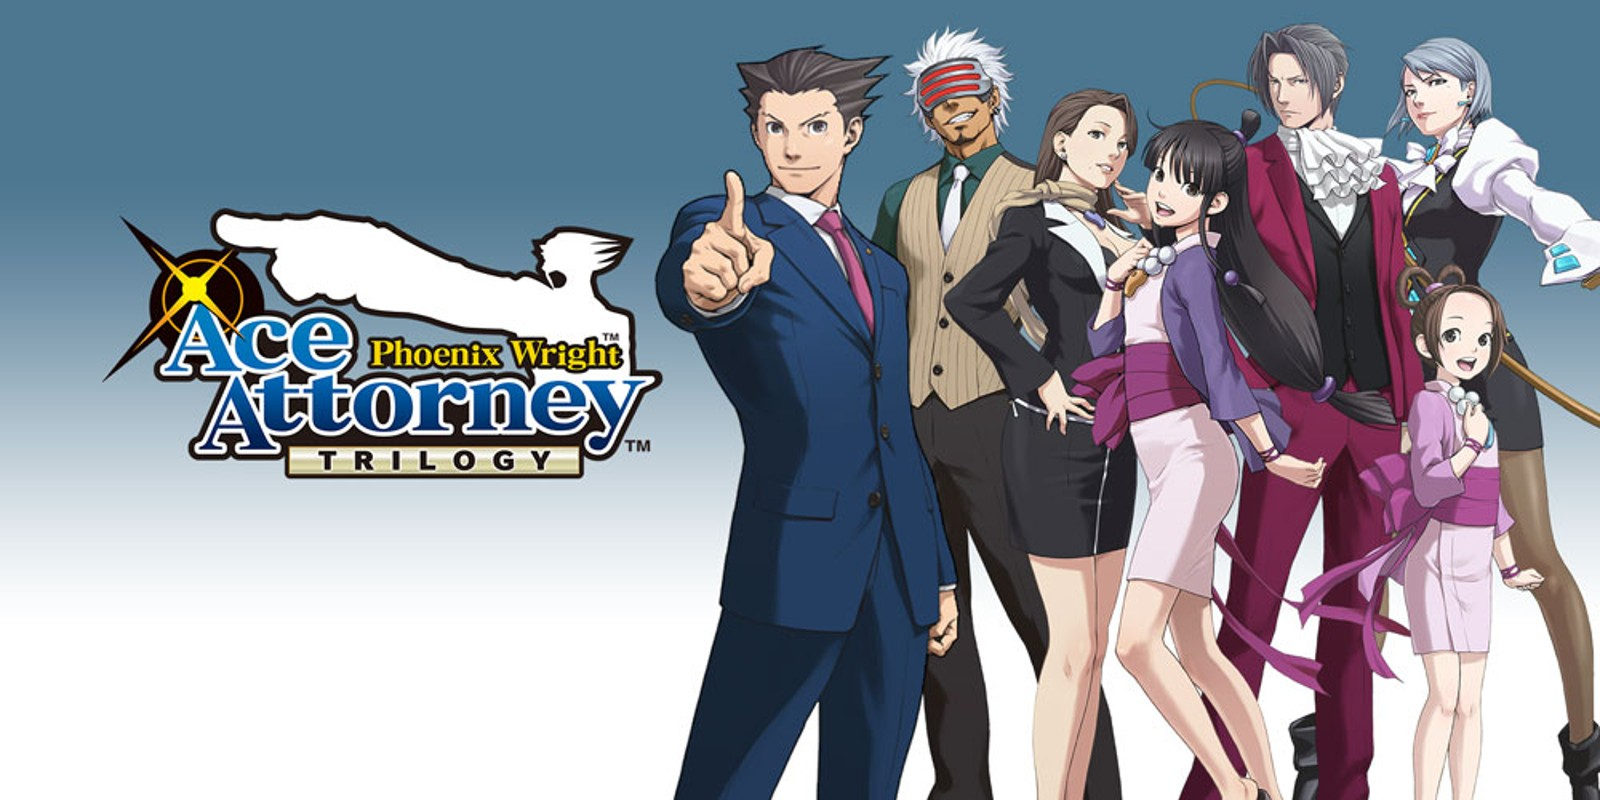 Phoenix Wright: Ace Attorney Trilogy diventa multipiattaforma thumbnail